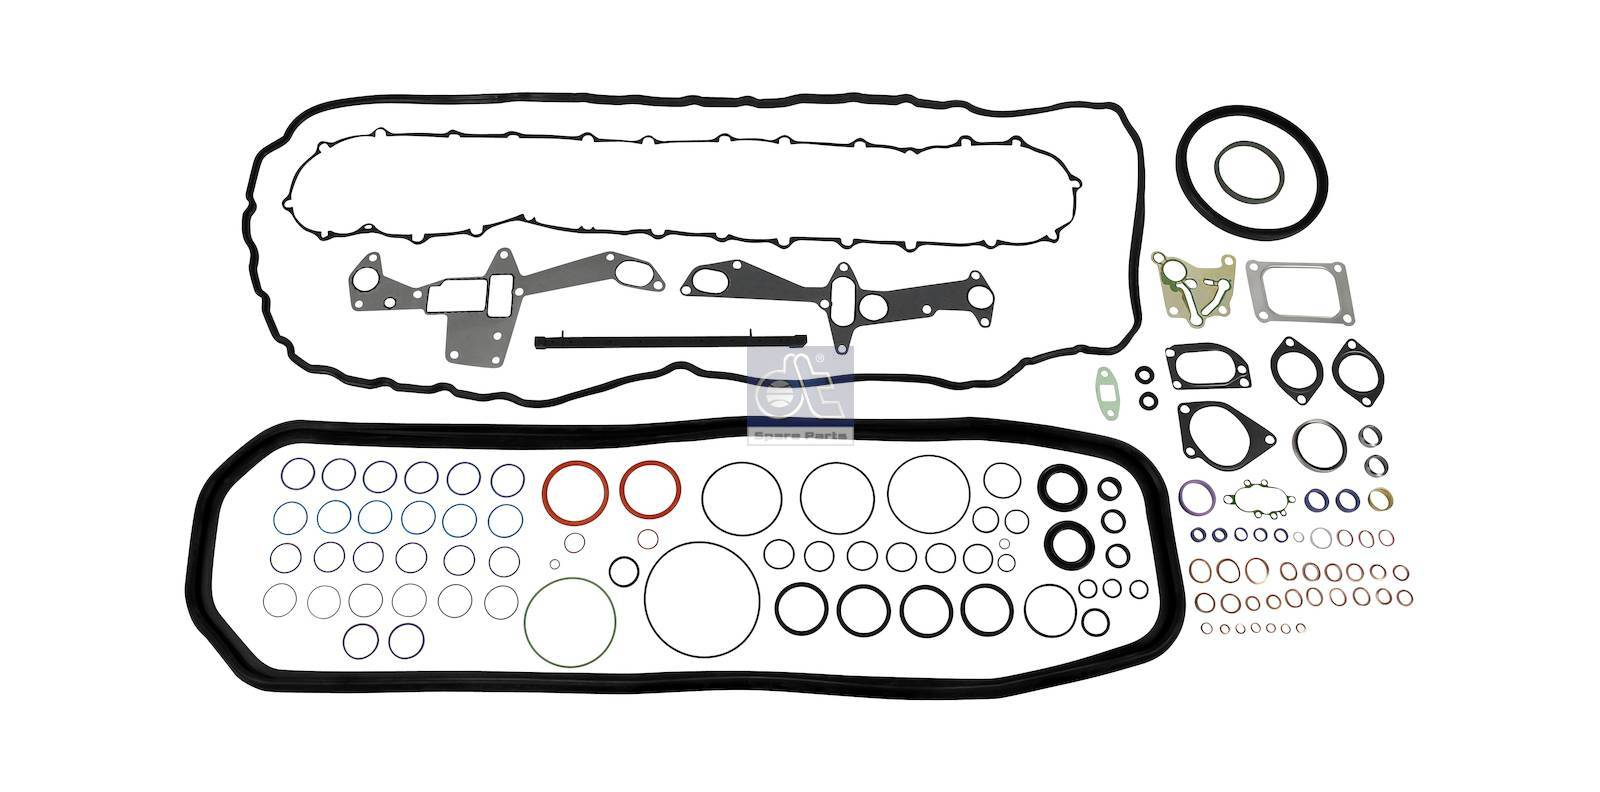 Dt 2 Overhaul Kit Suitable For Volvo